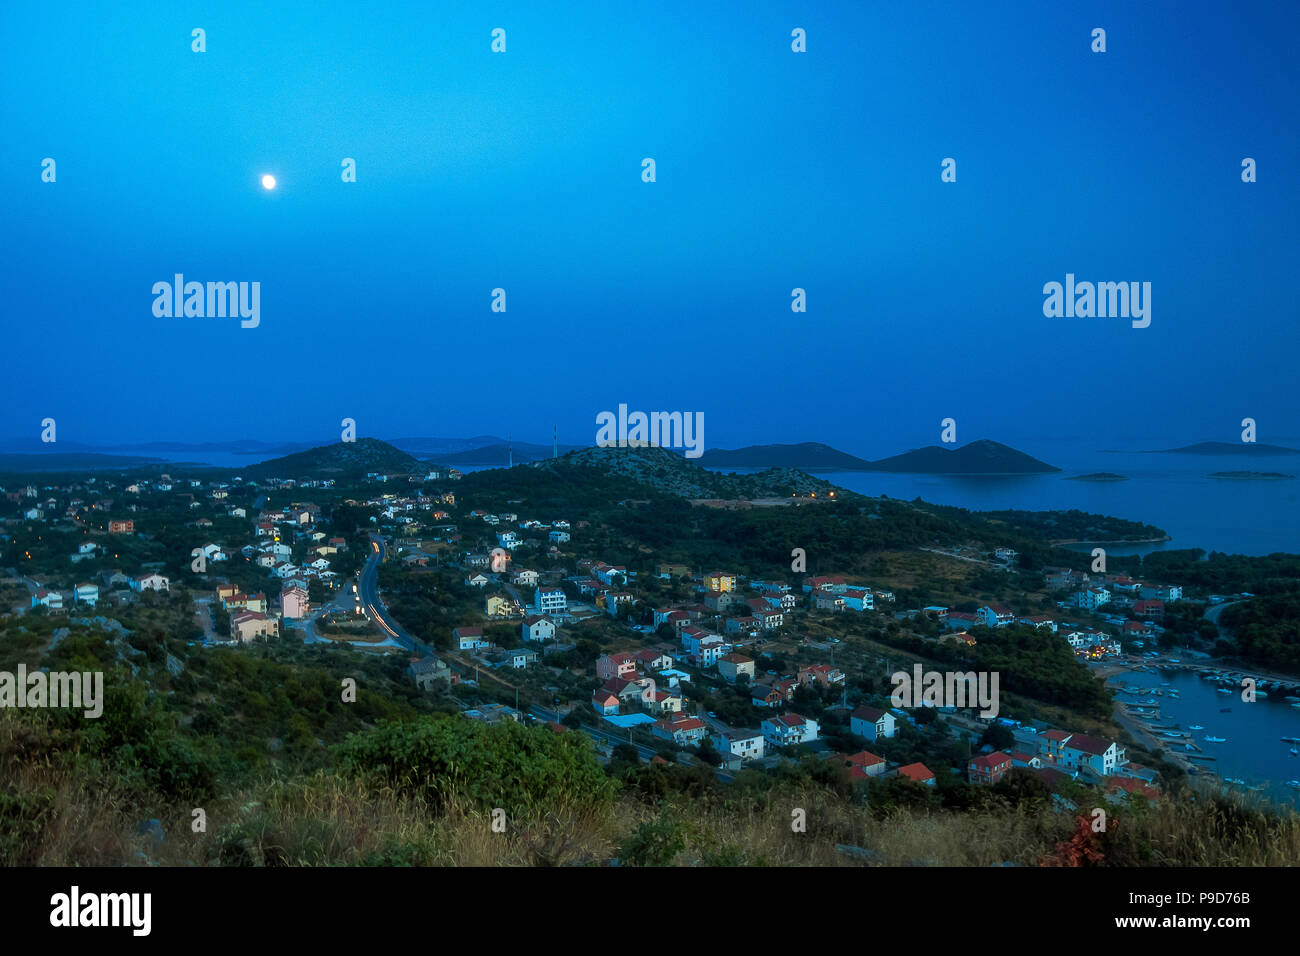 Amazing Kornati archipelago of Croatia. Northern part of Dalmatia. Sunny detail of Drage town. Beautiful night seascape with moon from Zadar to Sibeni - Stock Image